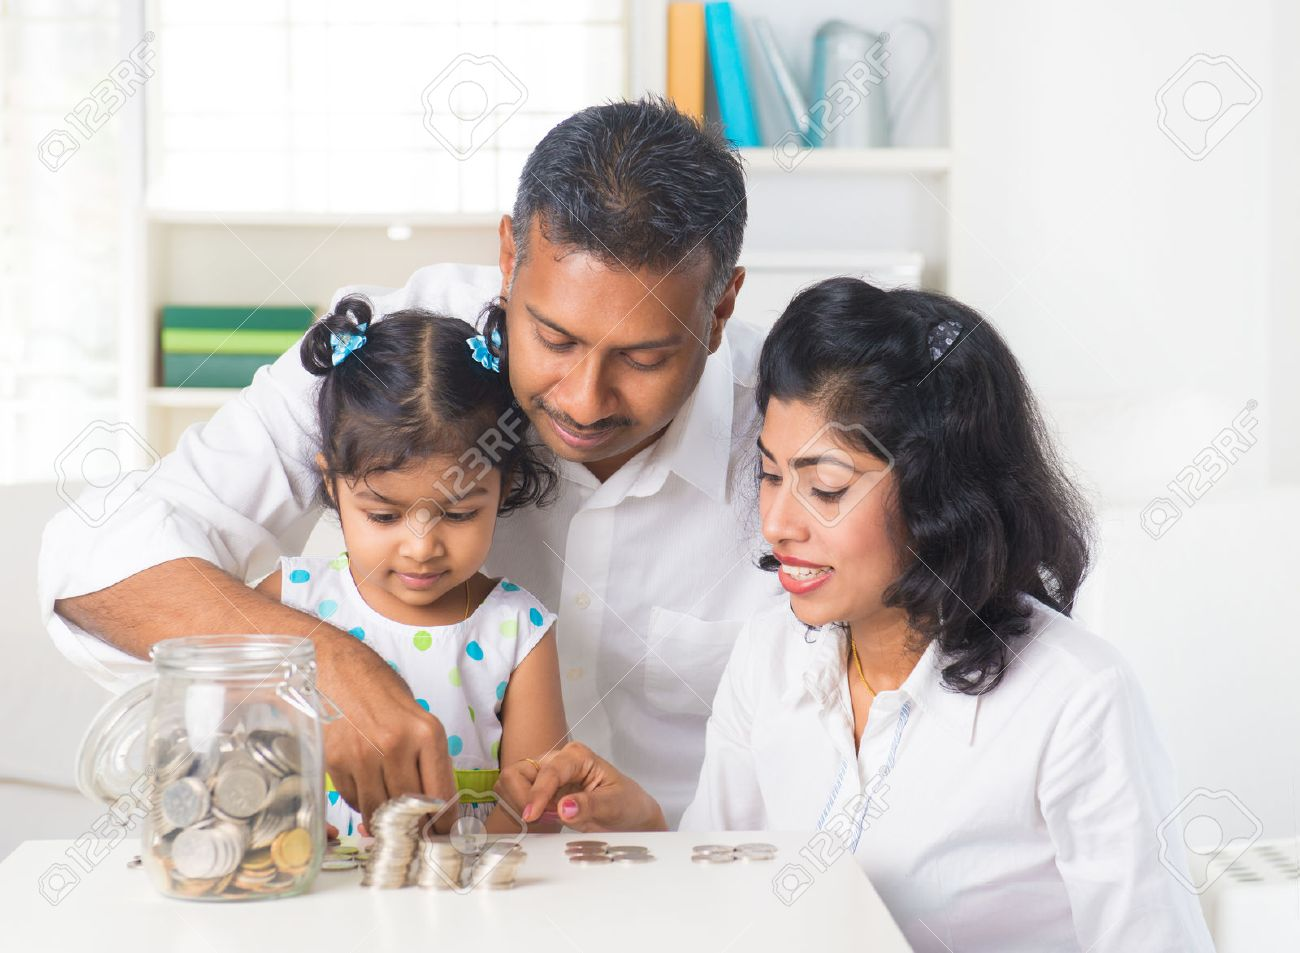 indian family teaching children on savings and financial planning Stock Photo - 24944256